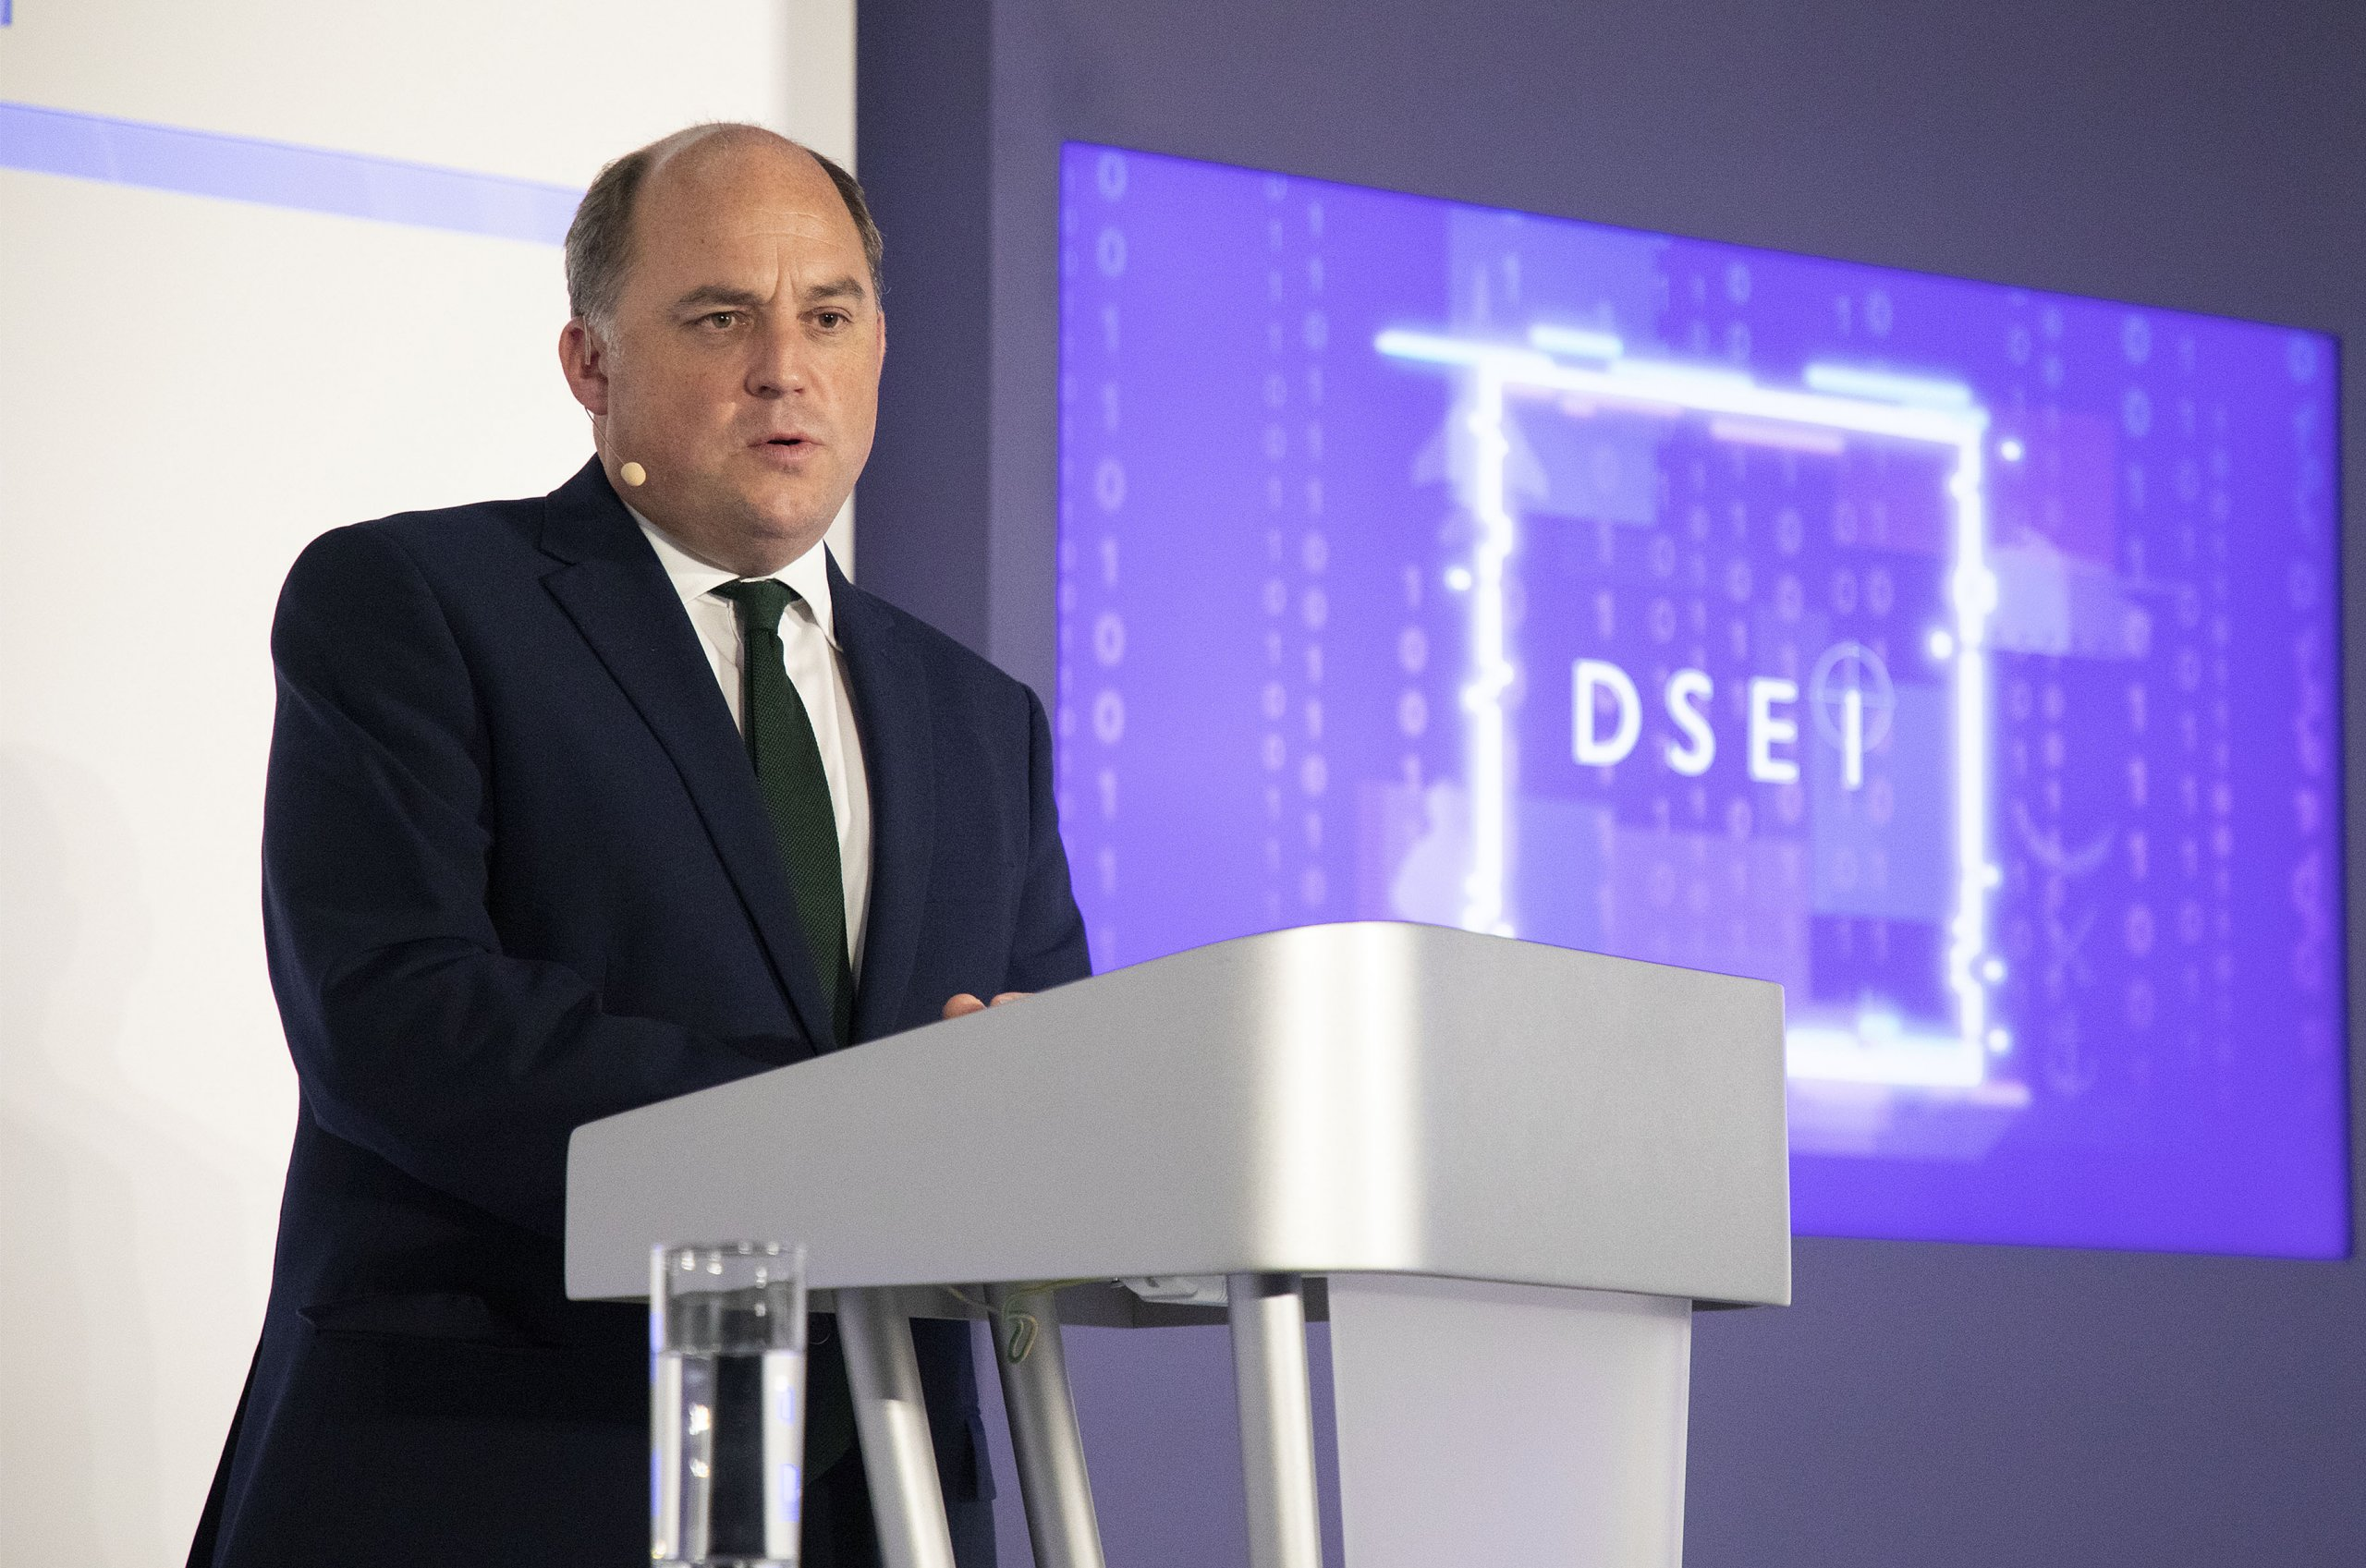 Secretary of State for Defence, The Rt Hon Ben Wallace MP delivering his keynote speech at DSEI 2021.